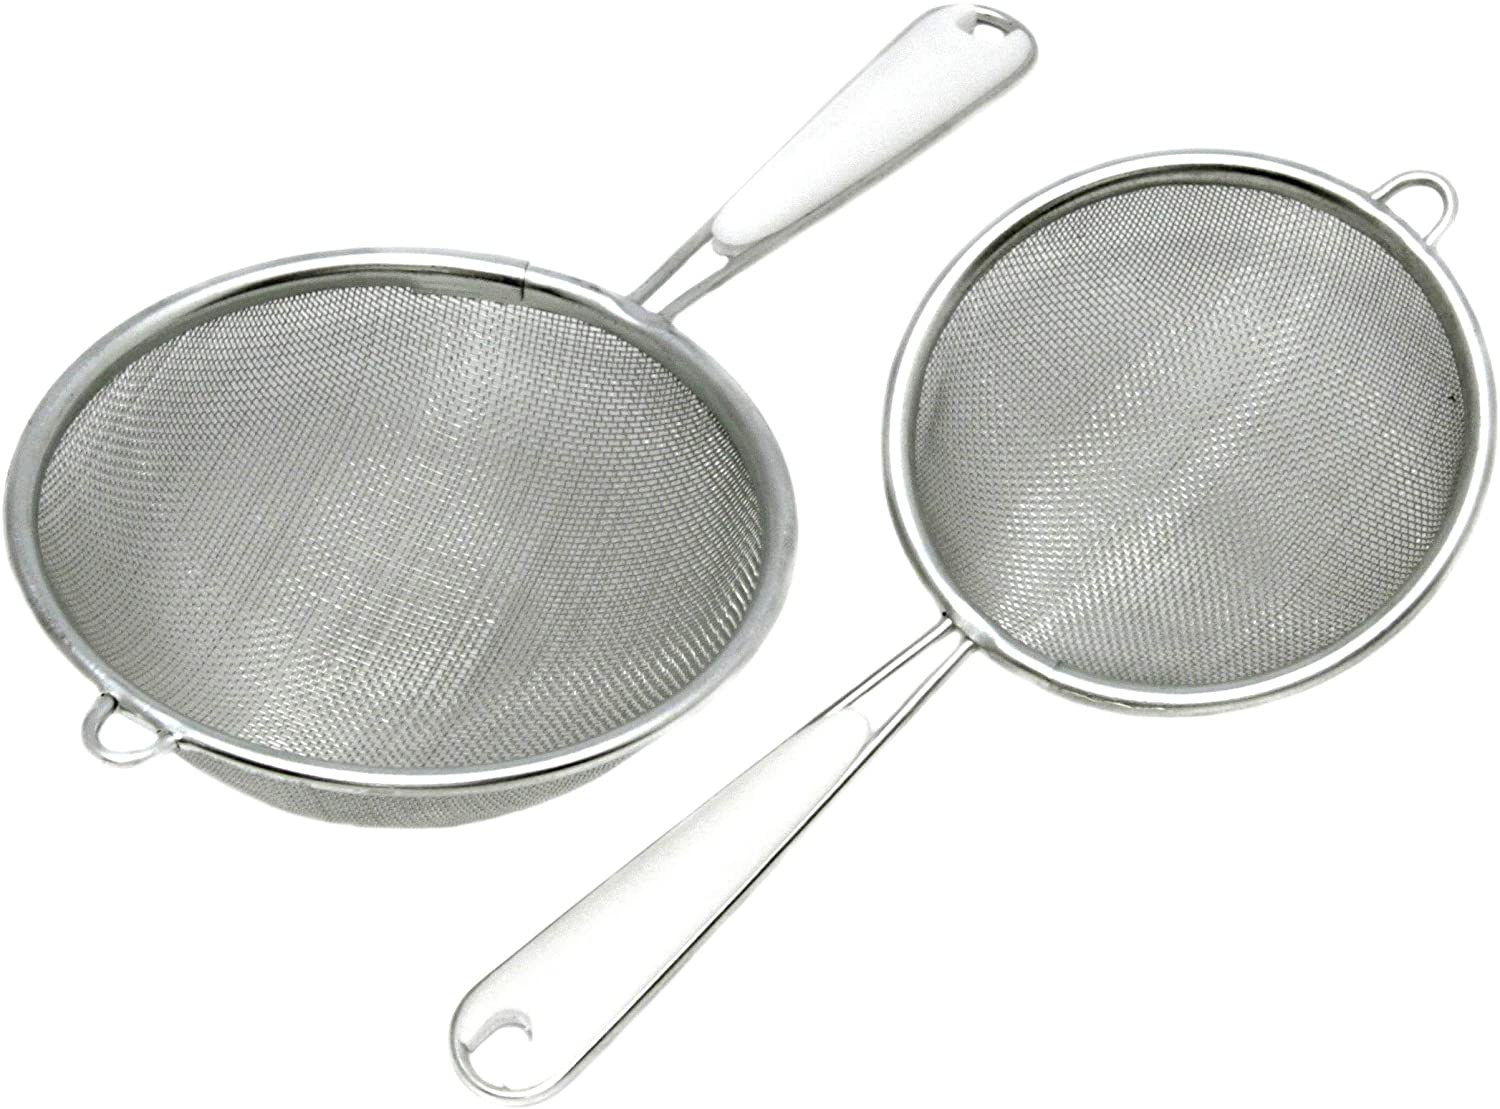 Chef Craft Stainless Steel Mesh Strainer, 2 Pack, Multisize, Silver